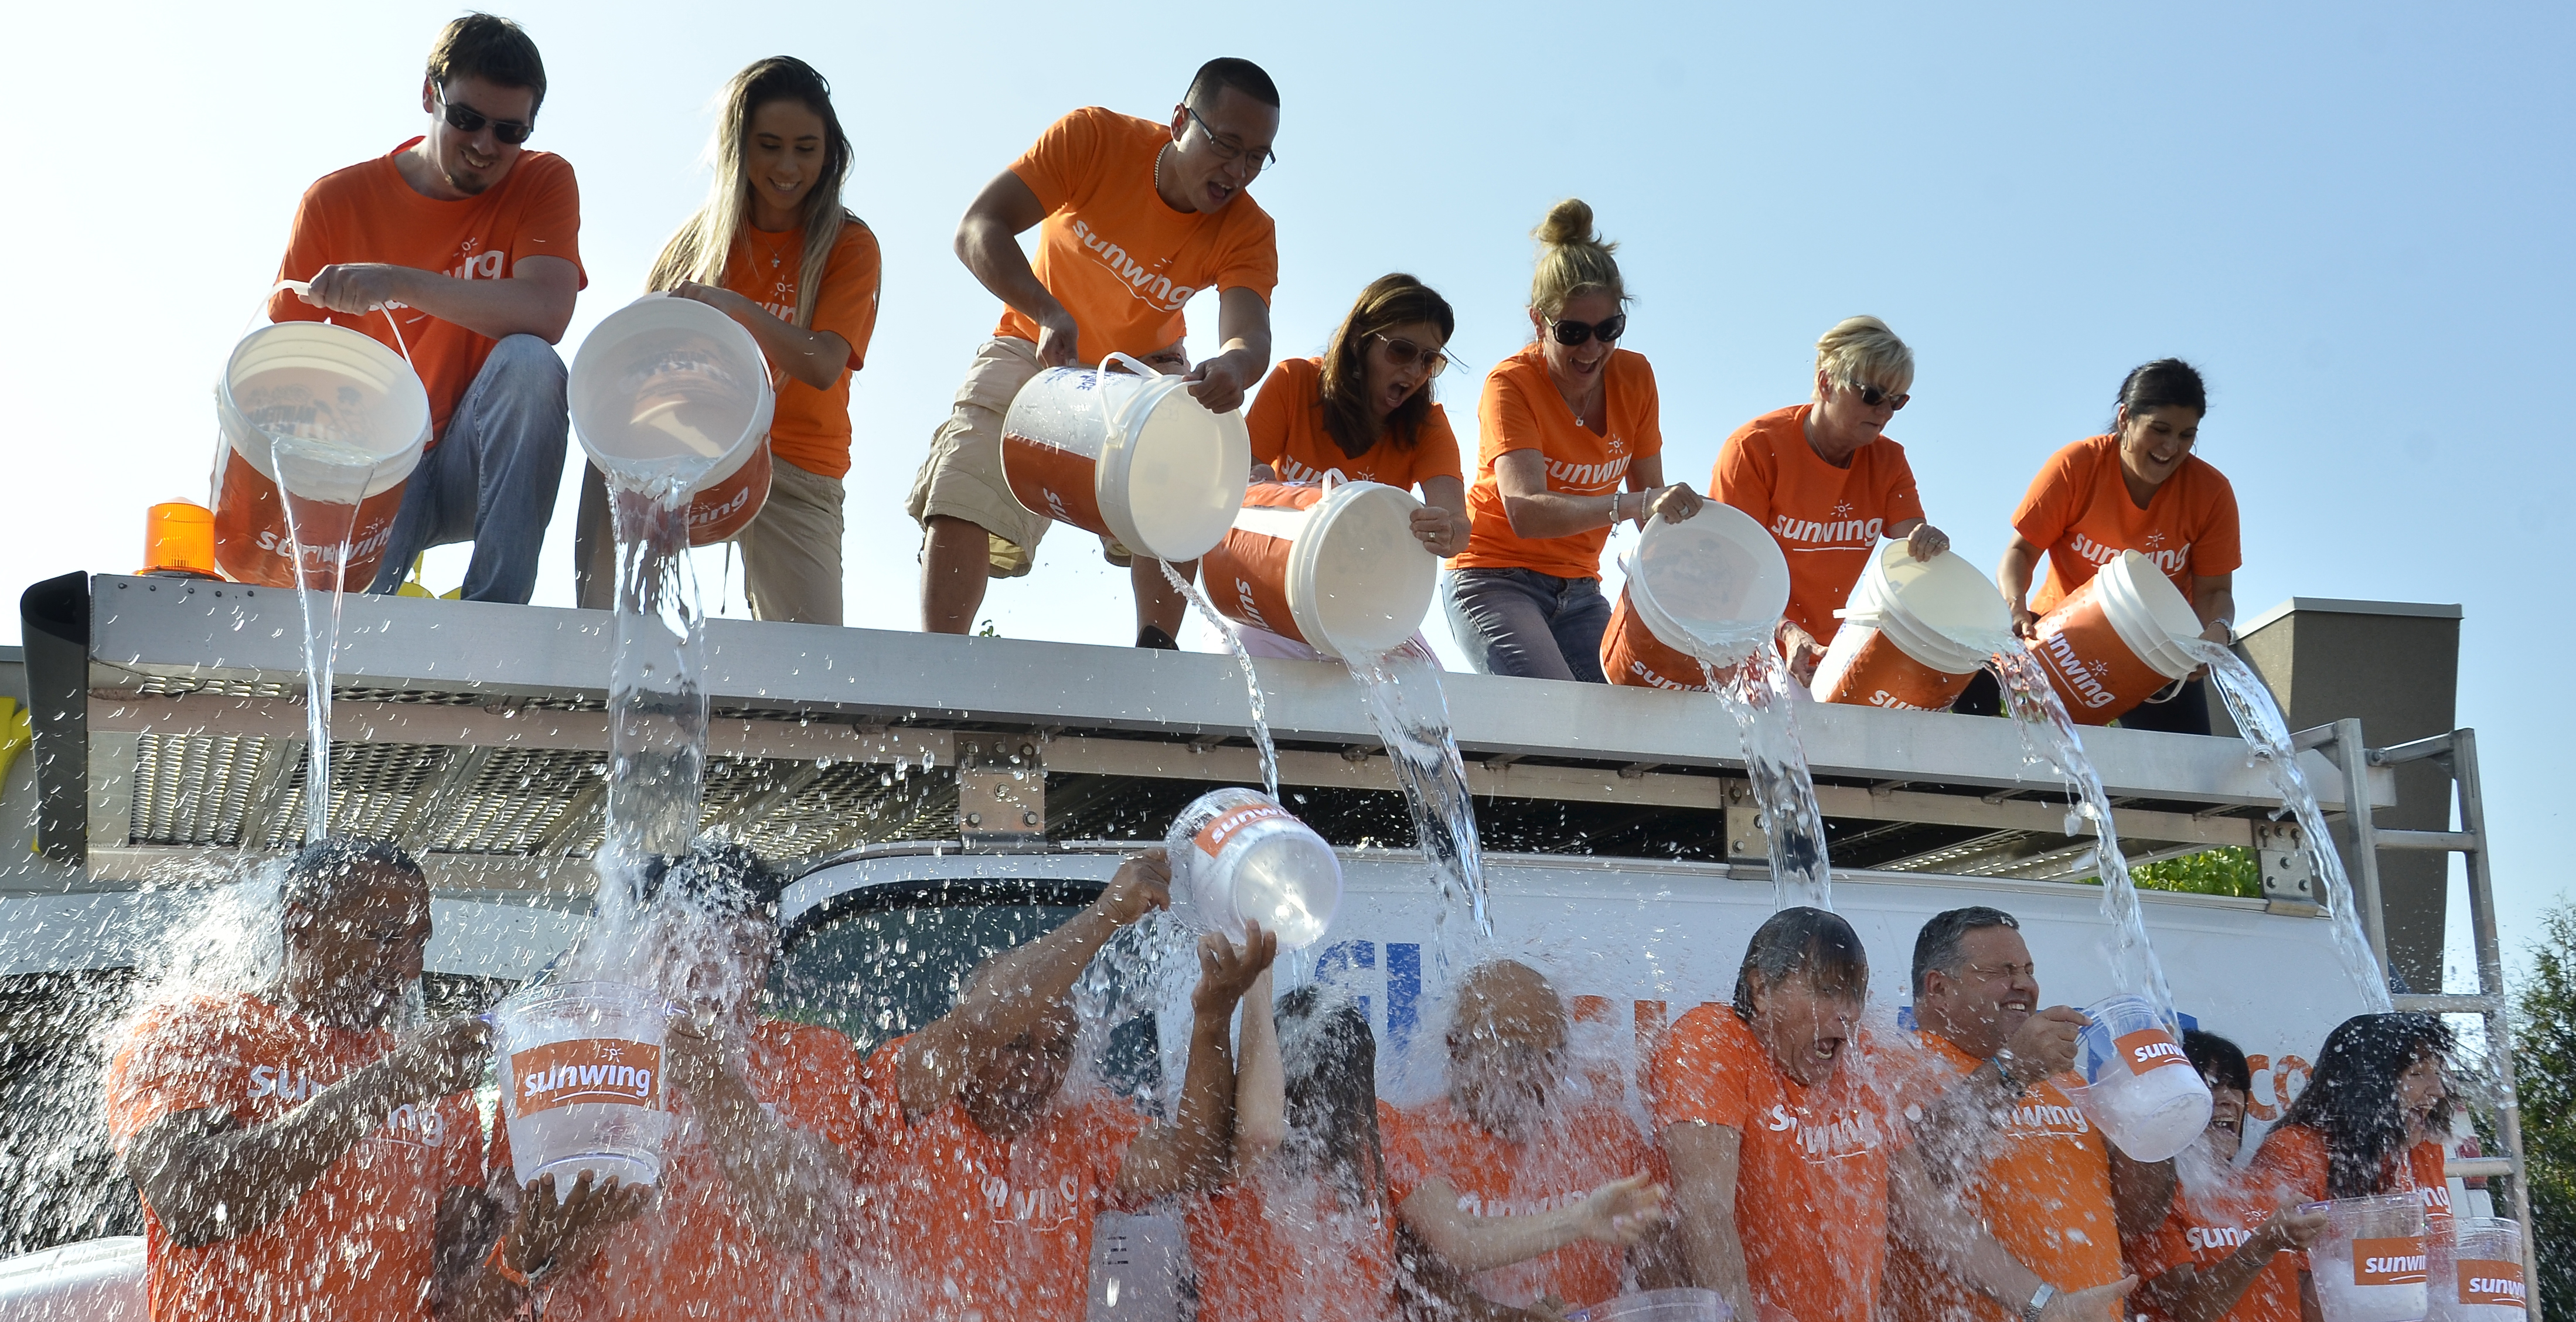 Sunwing accepts the Ice Bucket Challenge